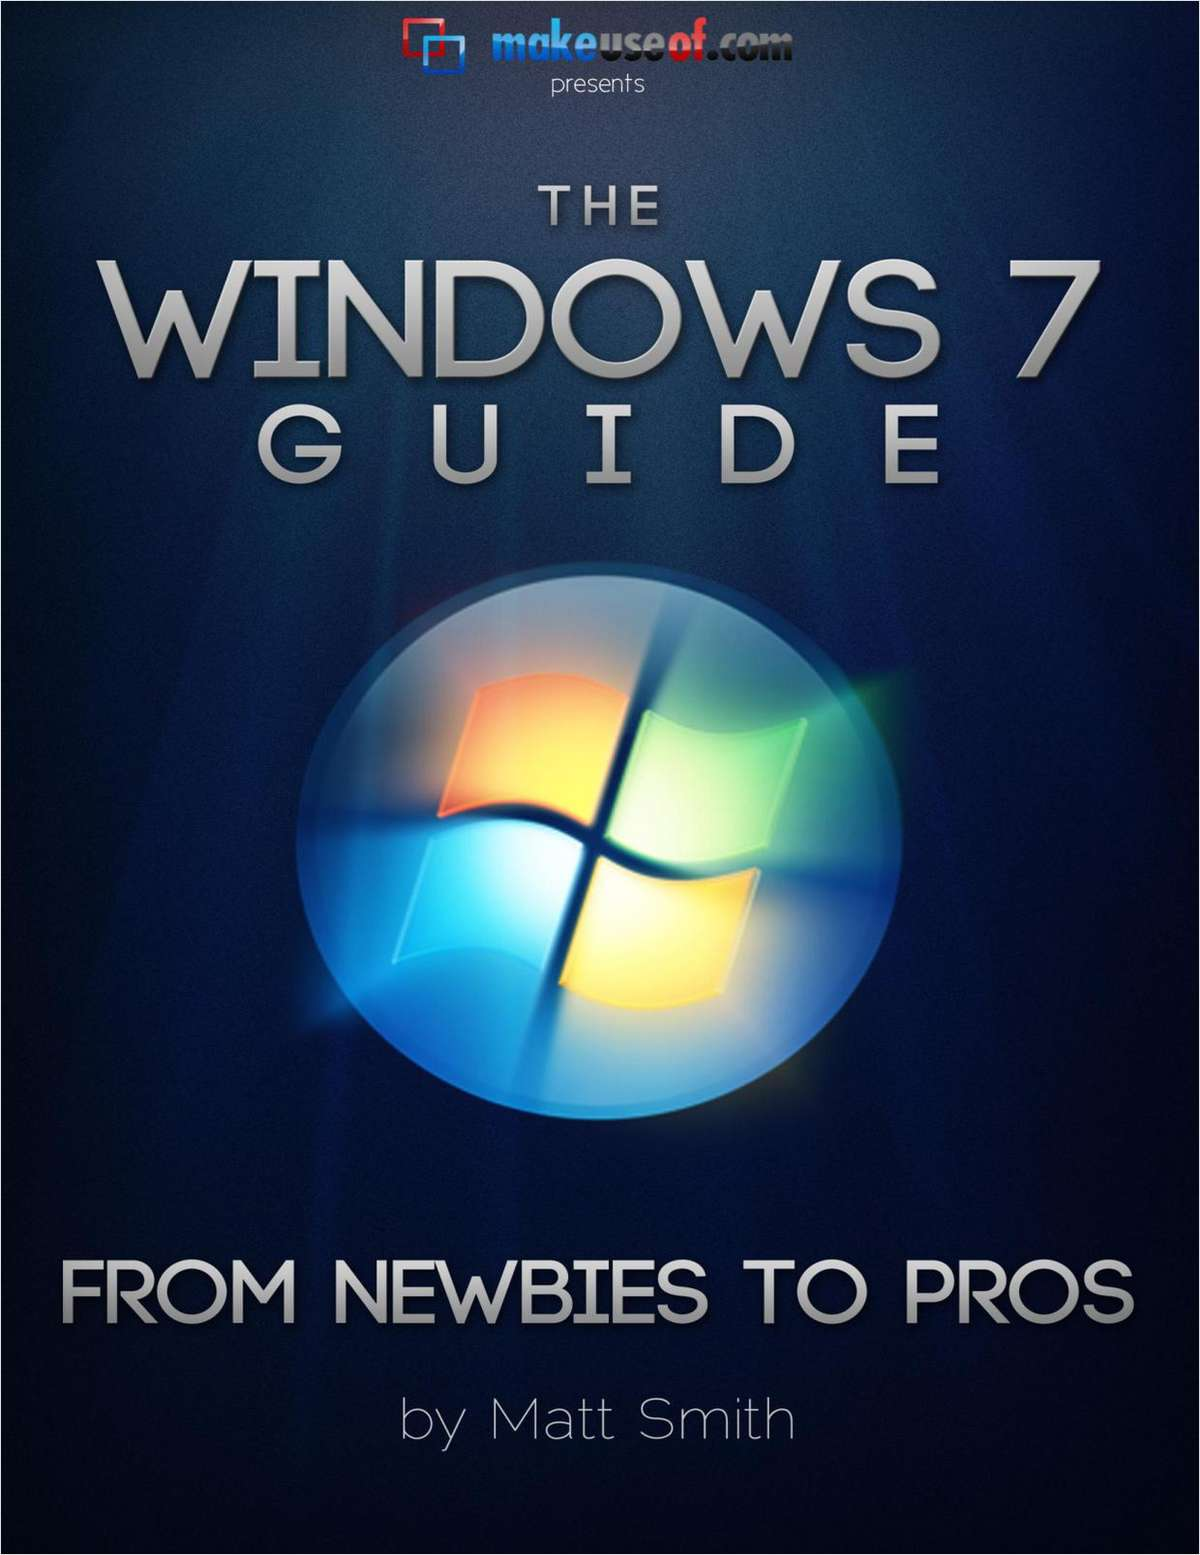 The Windows 7 Guide: From Newbies to Pros